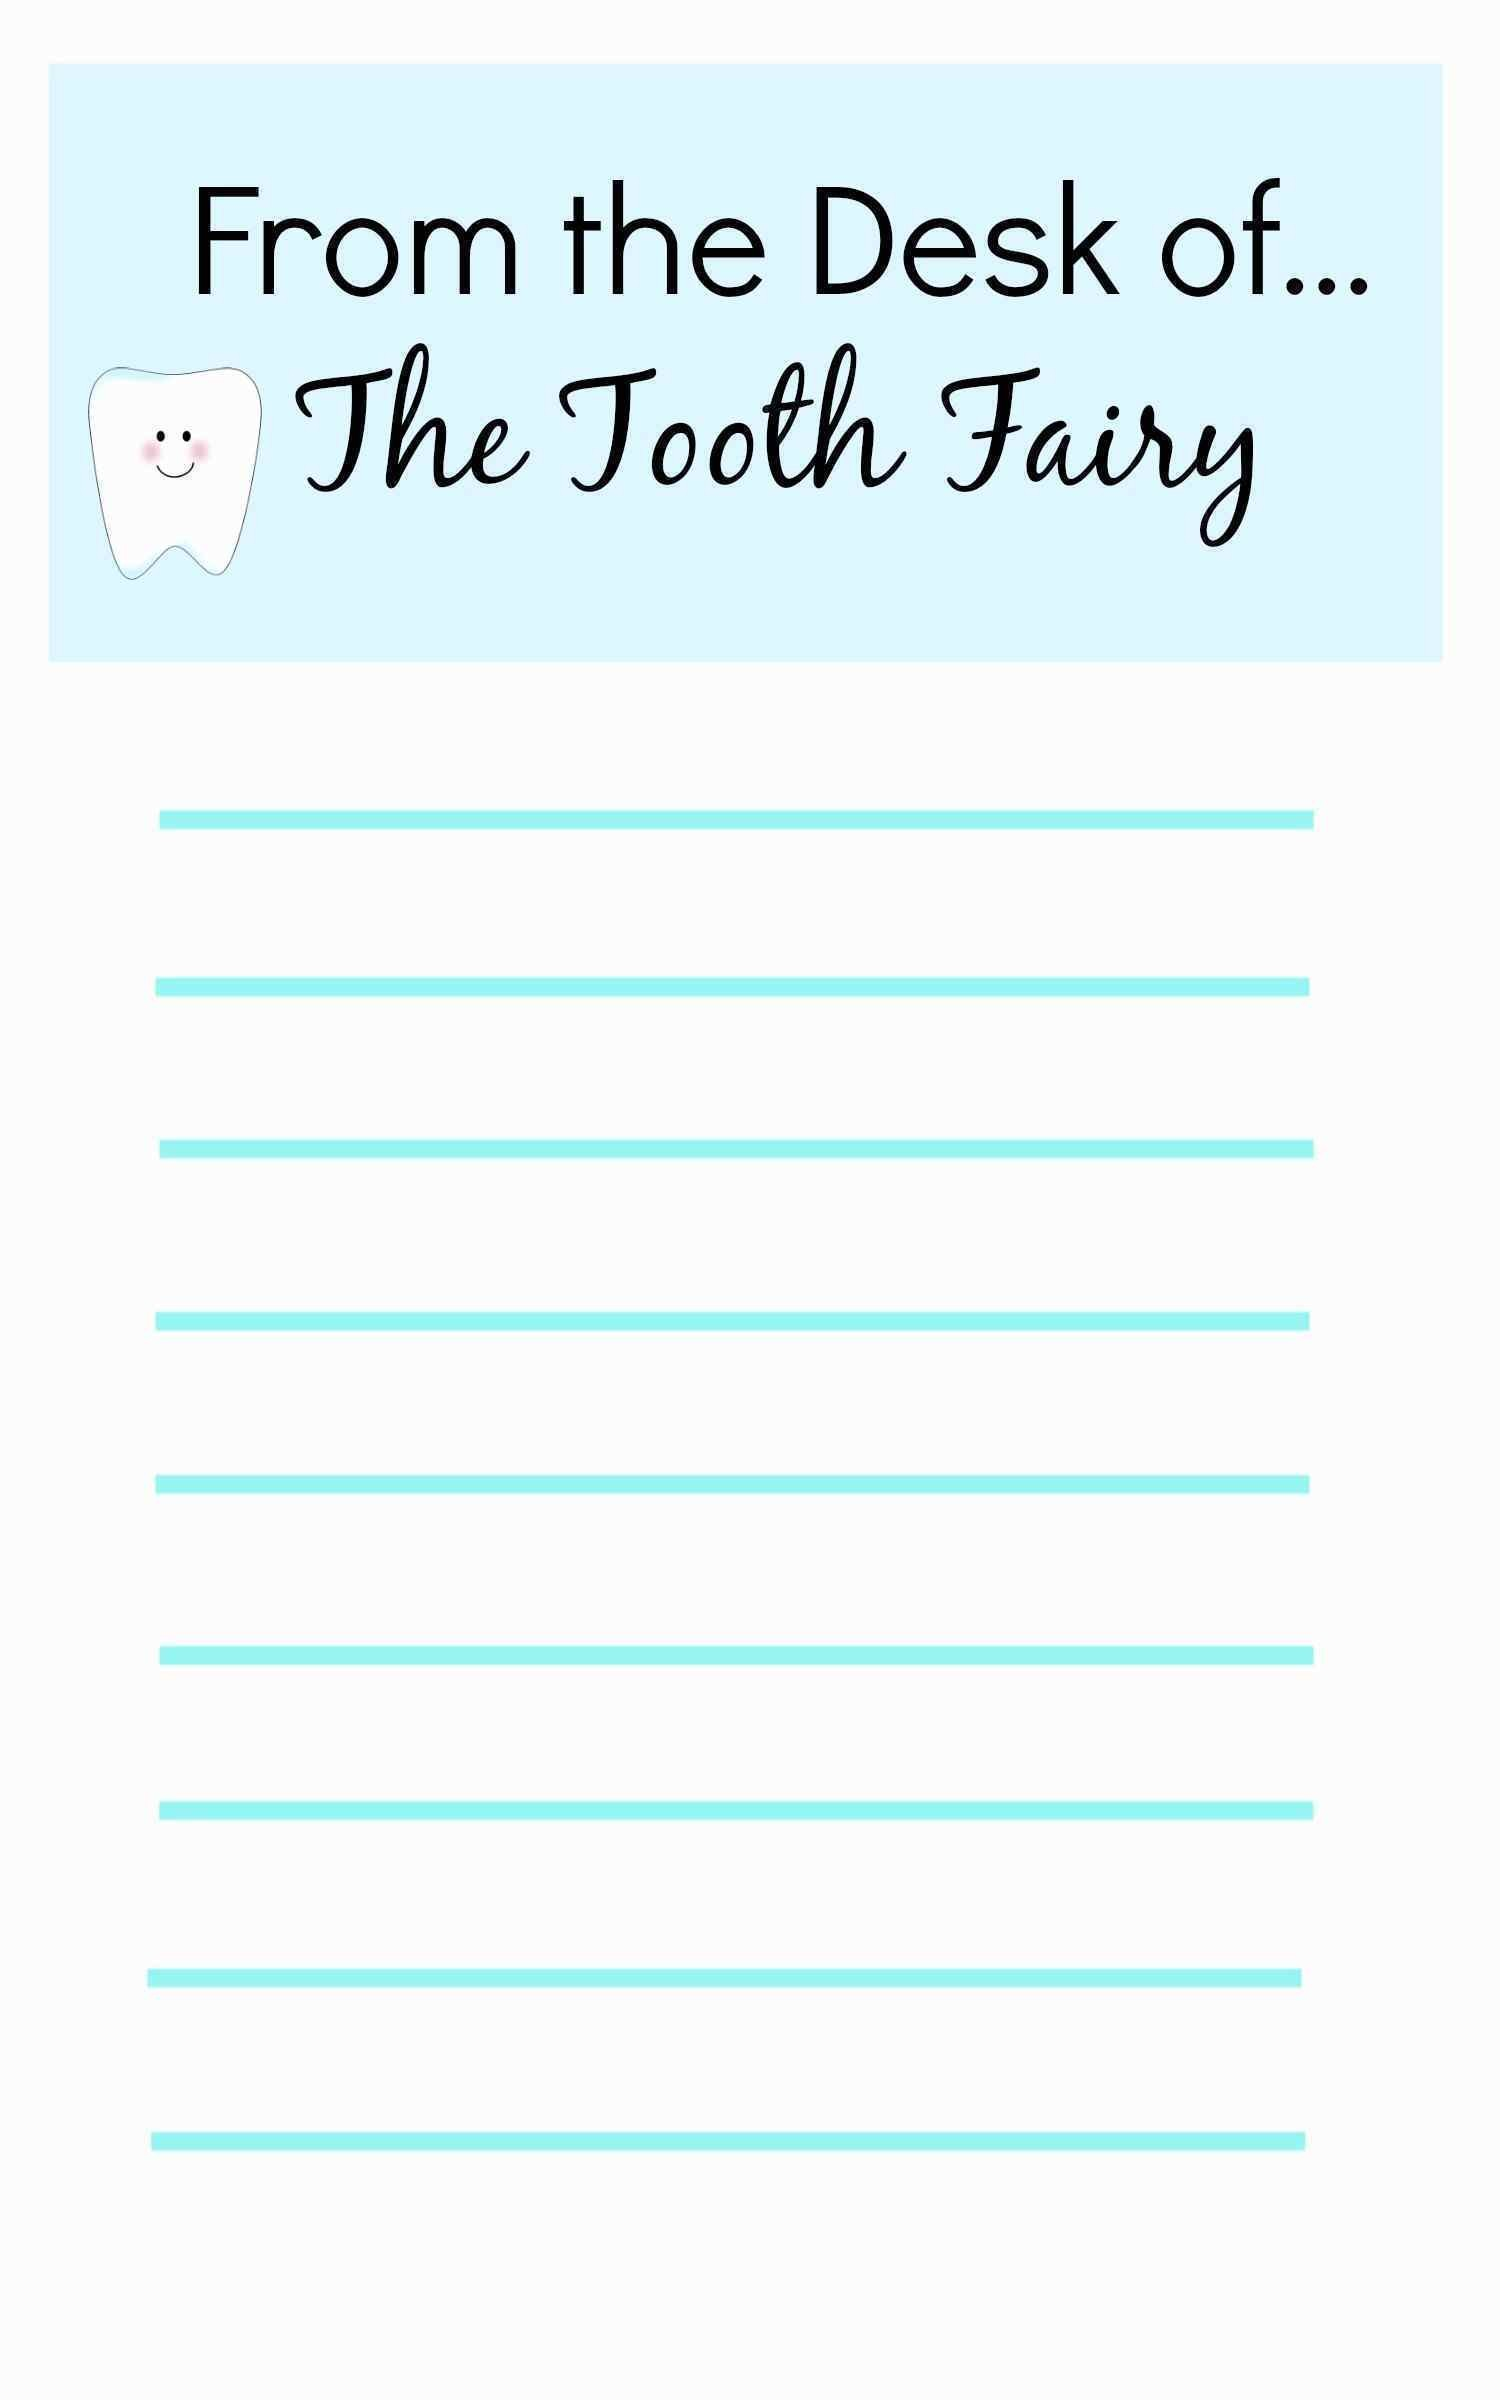 36 Cute Tooth Fairy Letters | KittyBaby.com Cute Templates For Letters on cute templates for papers, cute templates for calendar, bear border for letters, cute templates for signs, cute templates for events, cute labels, cute templates for lists, design for letters, brown for letters, cute templates for flyers, movie for letters, cute templates for journals, home for letters,